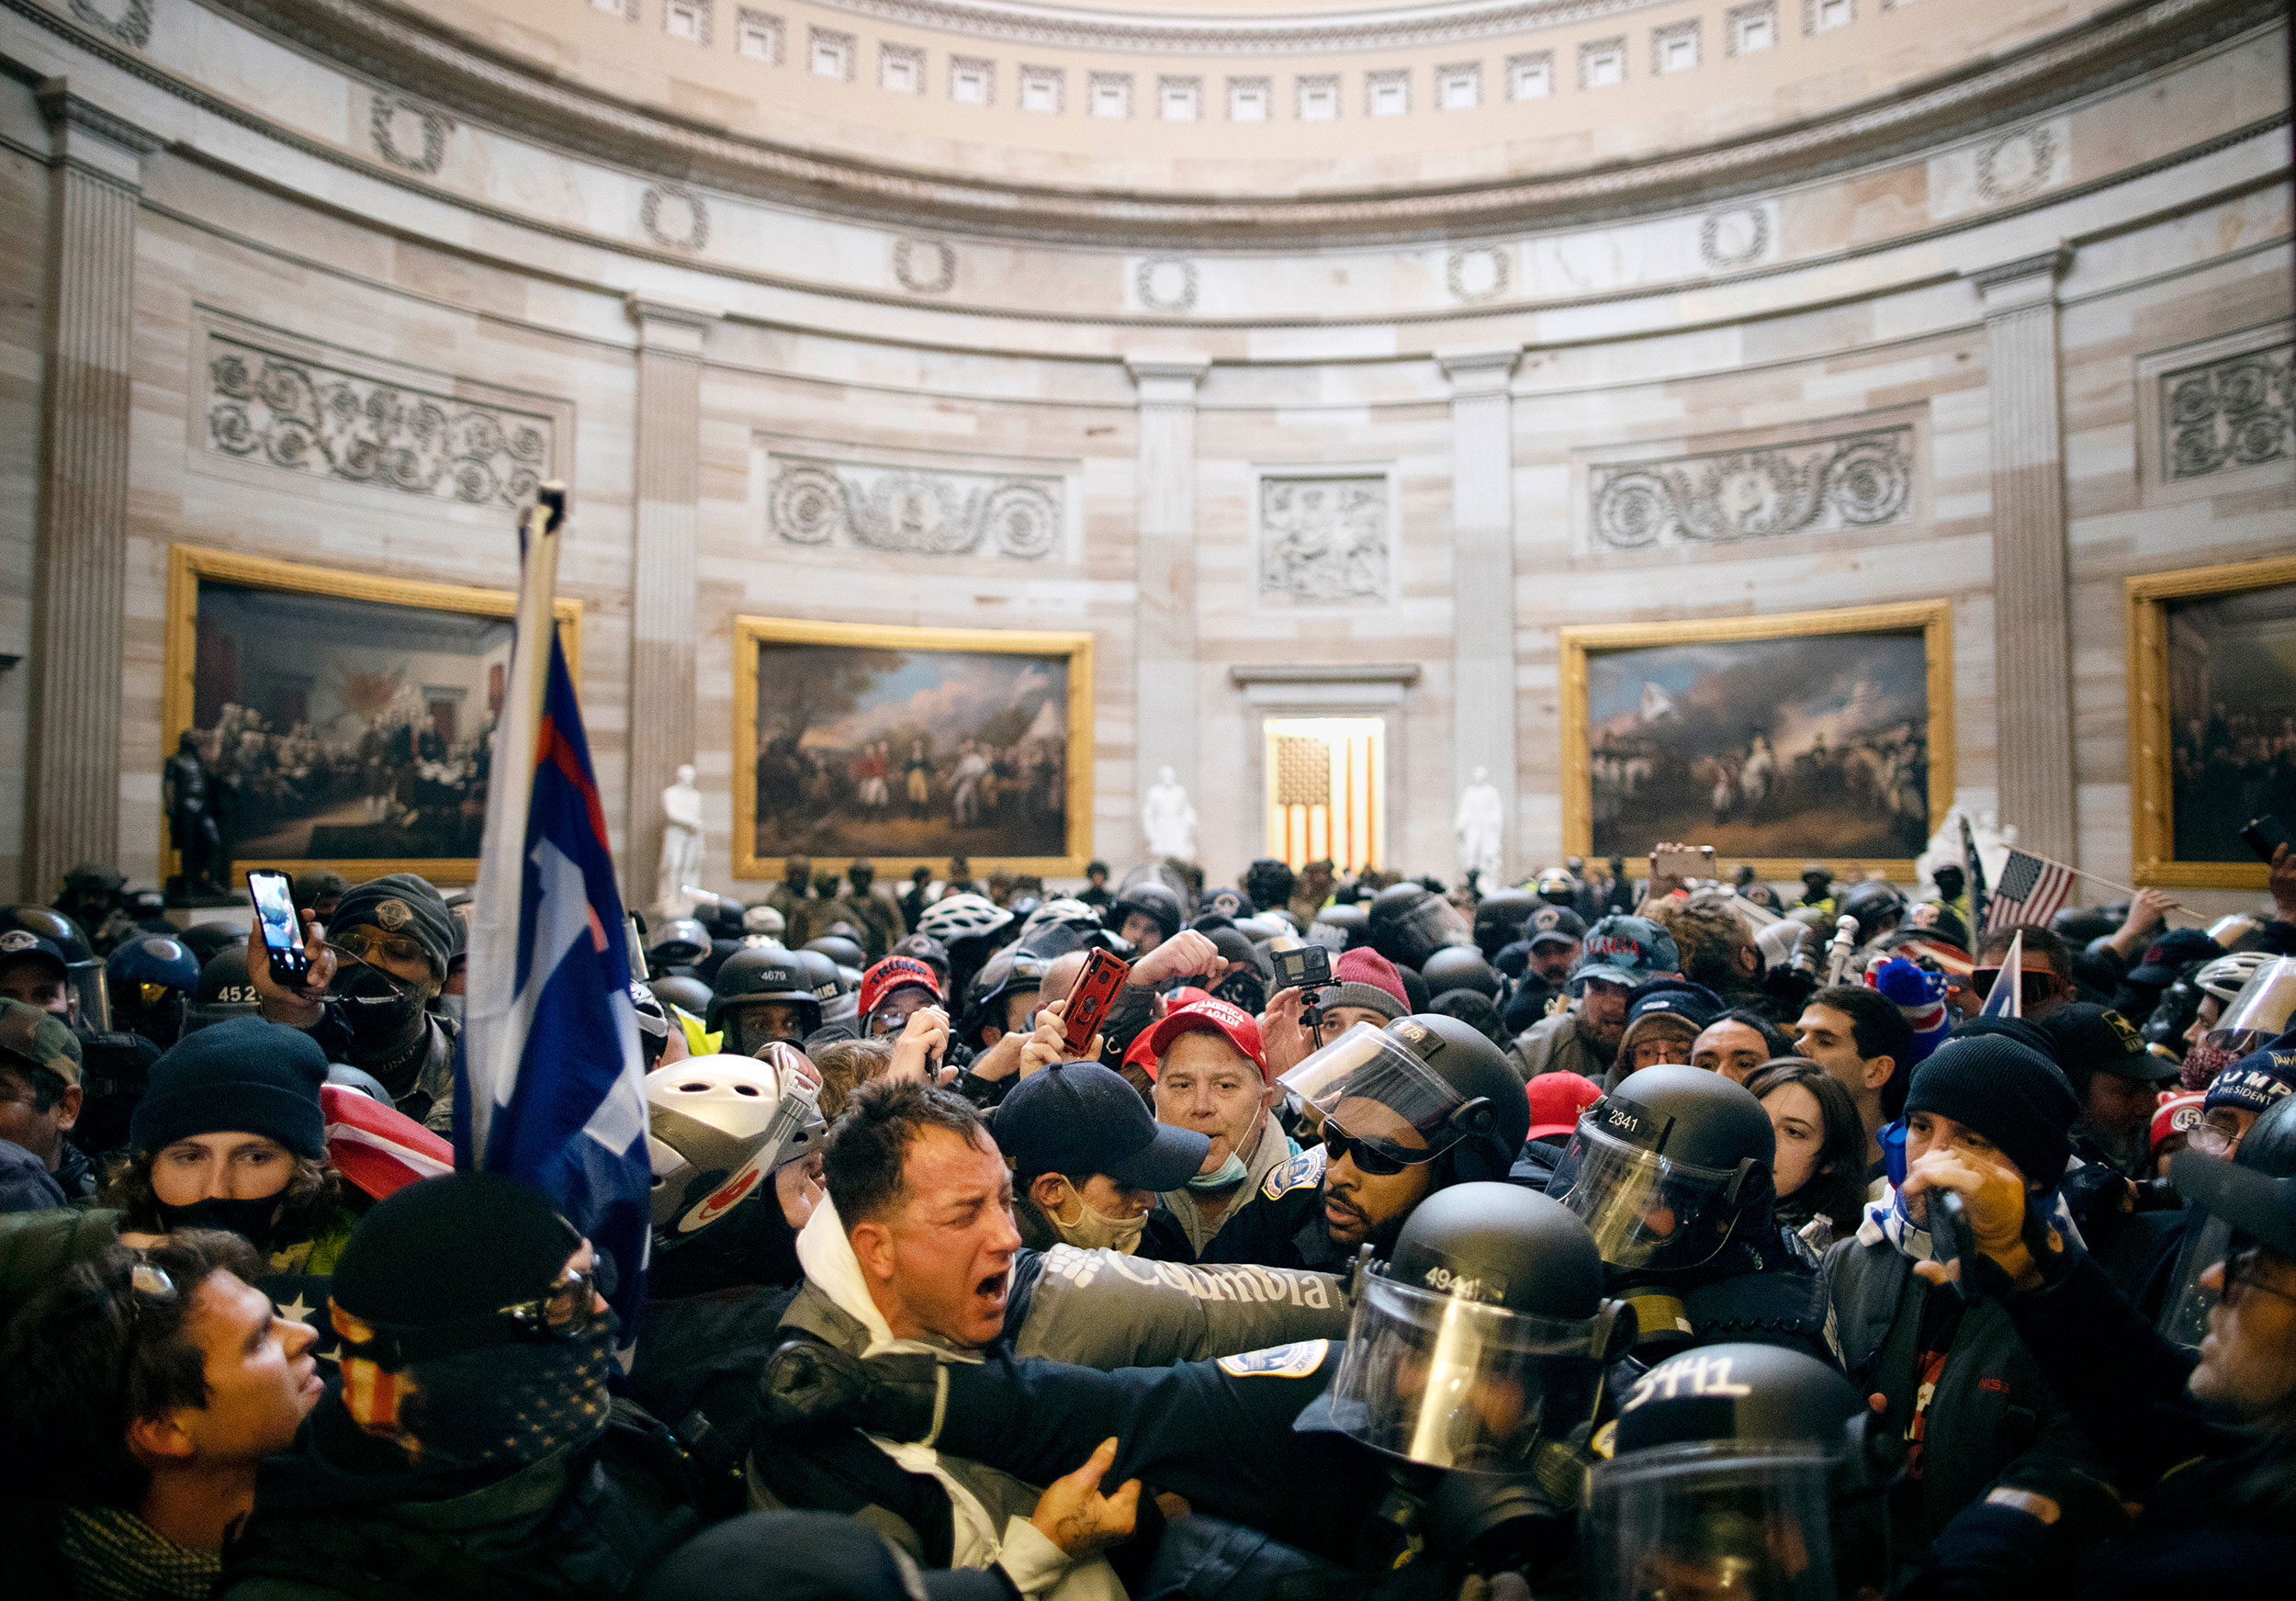 Rioters clash with police in the US Capitol building on January 6.